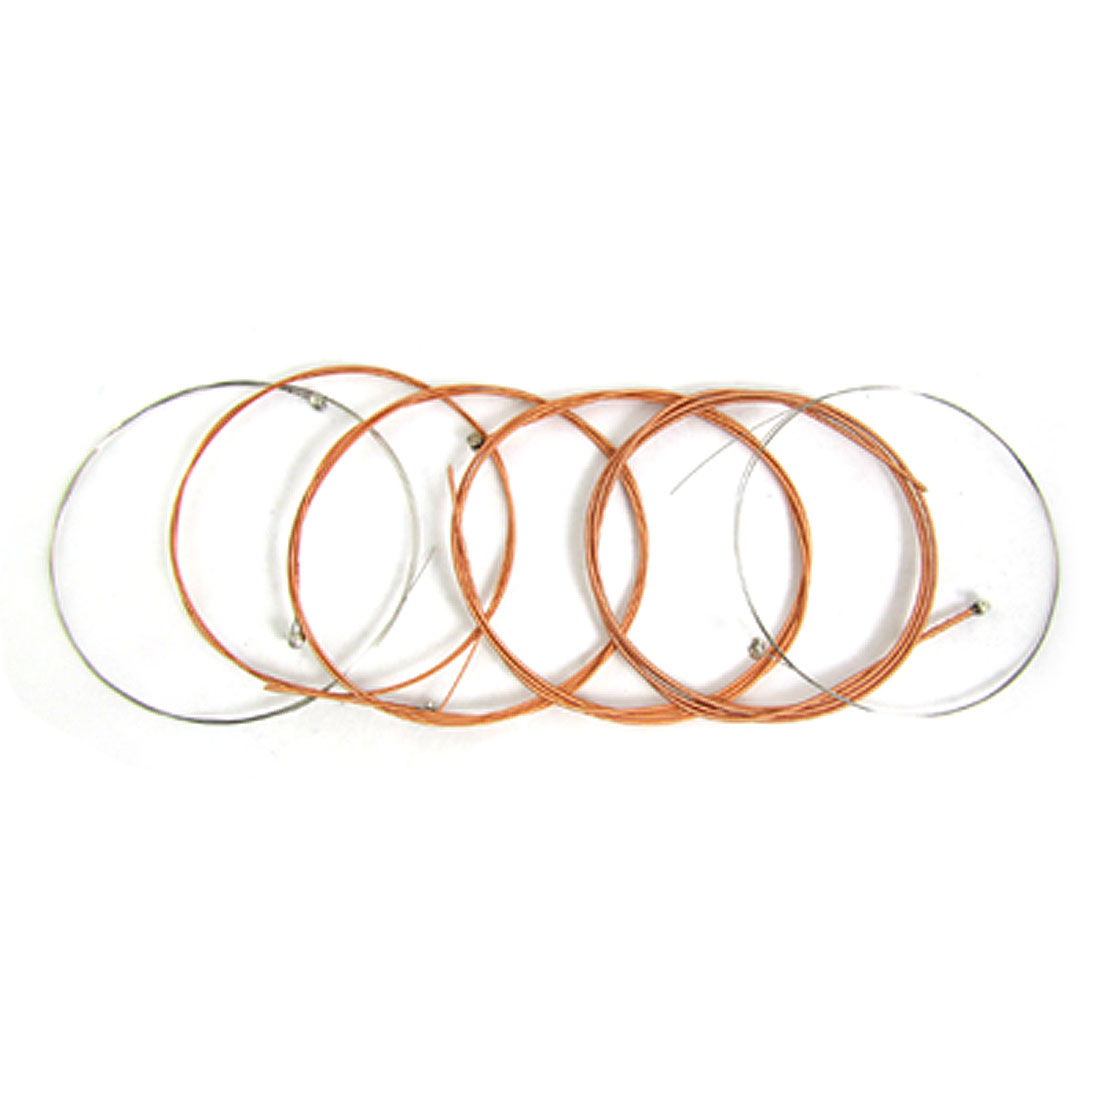 6 Pcs Copper Coated Alloy Strings for Acoustic Guitar